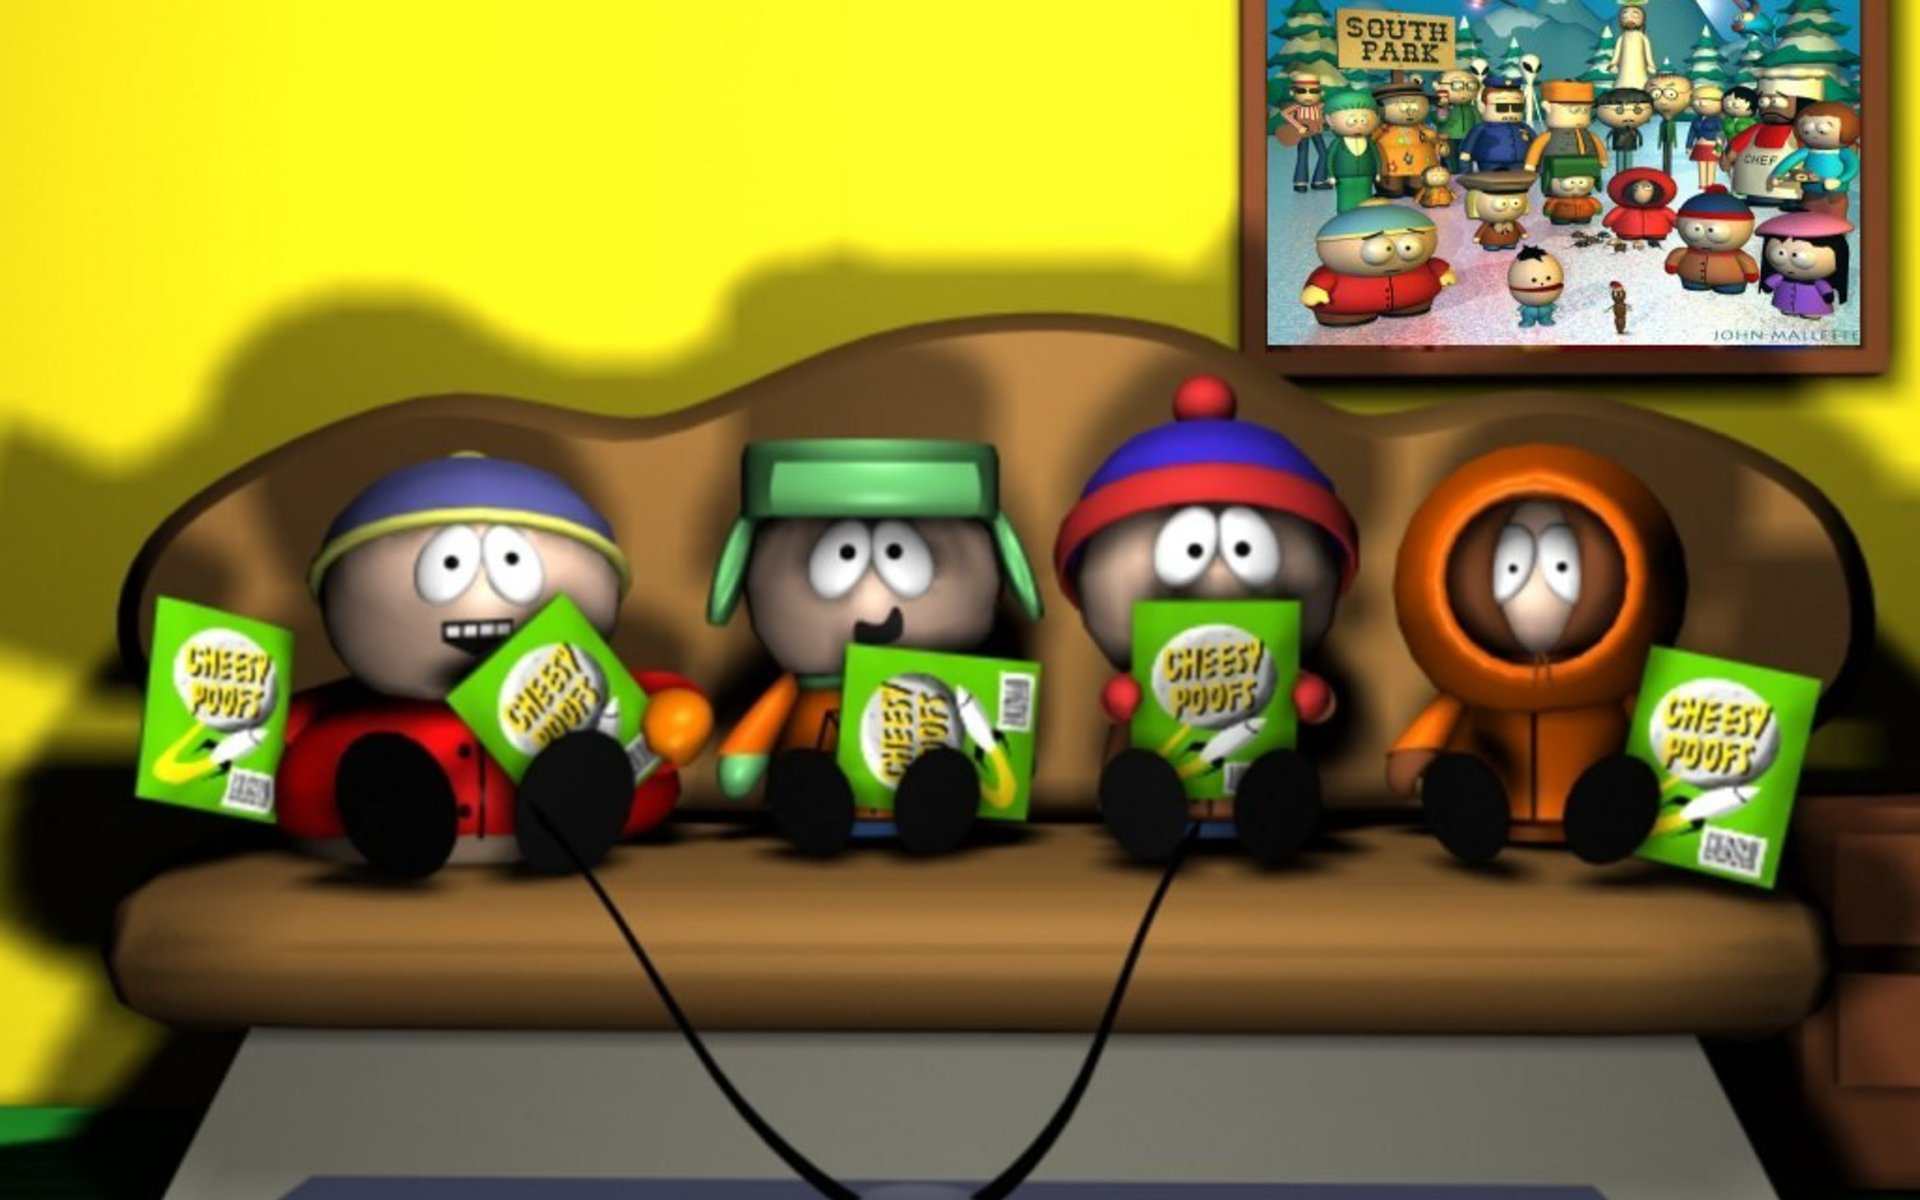 South Park Hd Wallpaper Background Image 1920x1200 Id 530185 Wallpaper Abyss